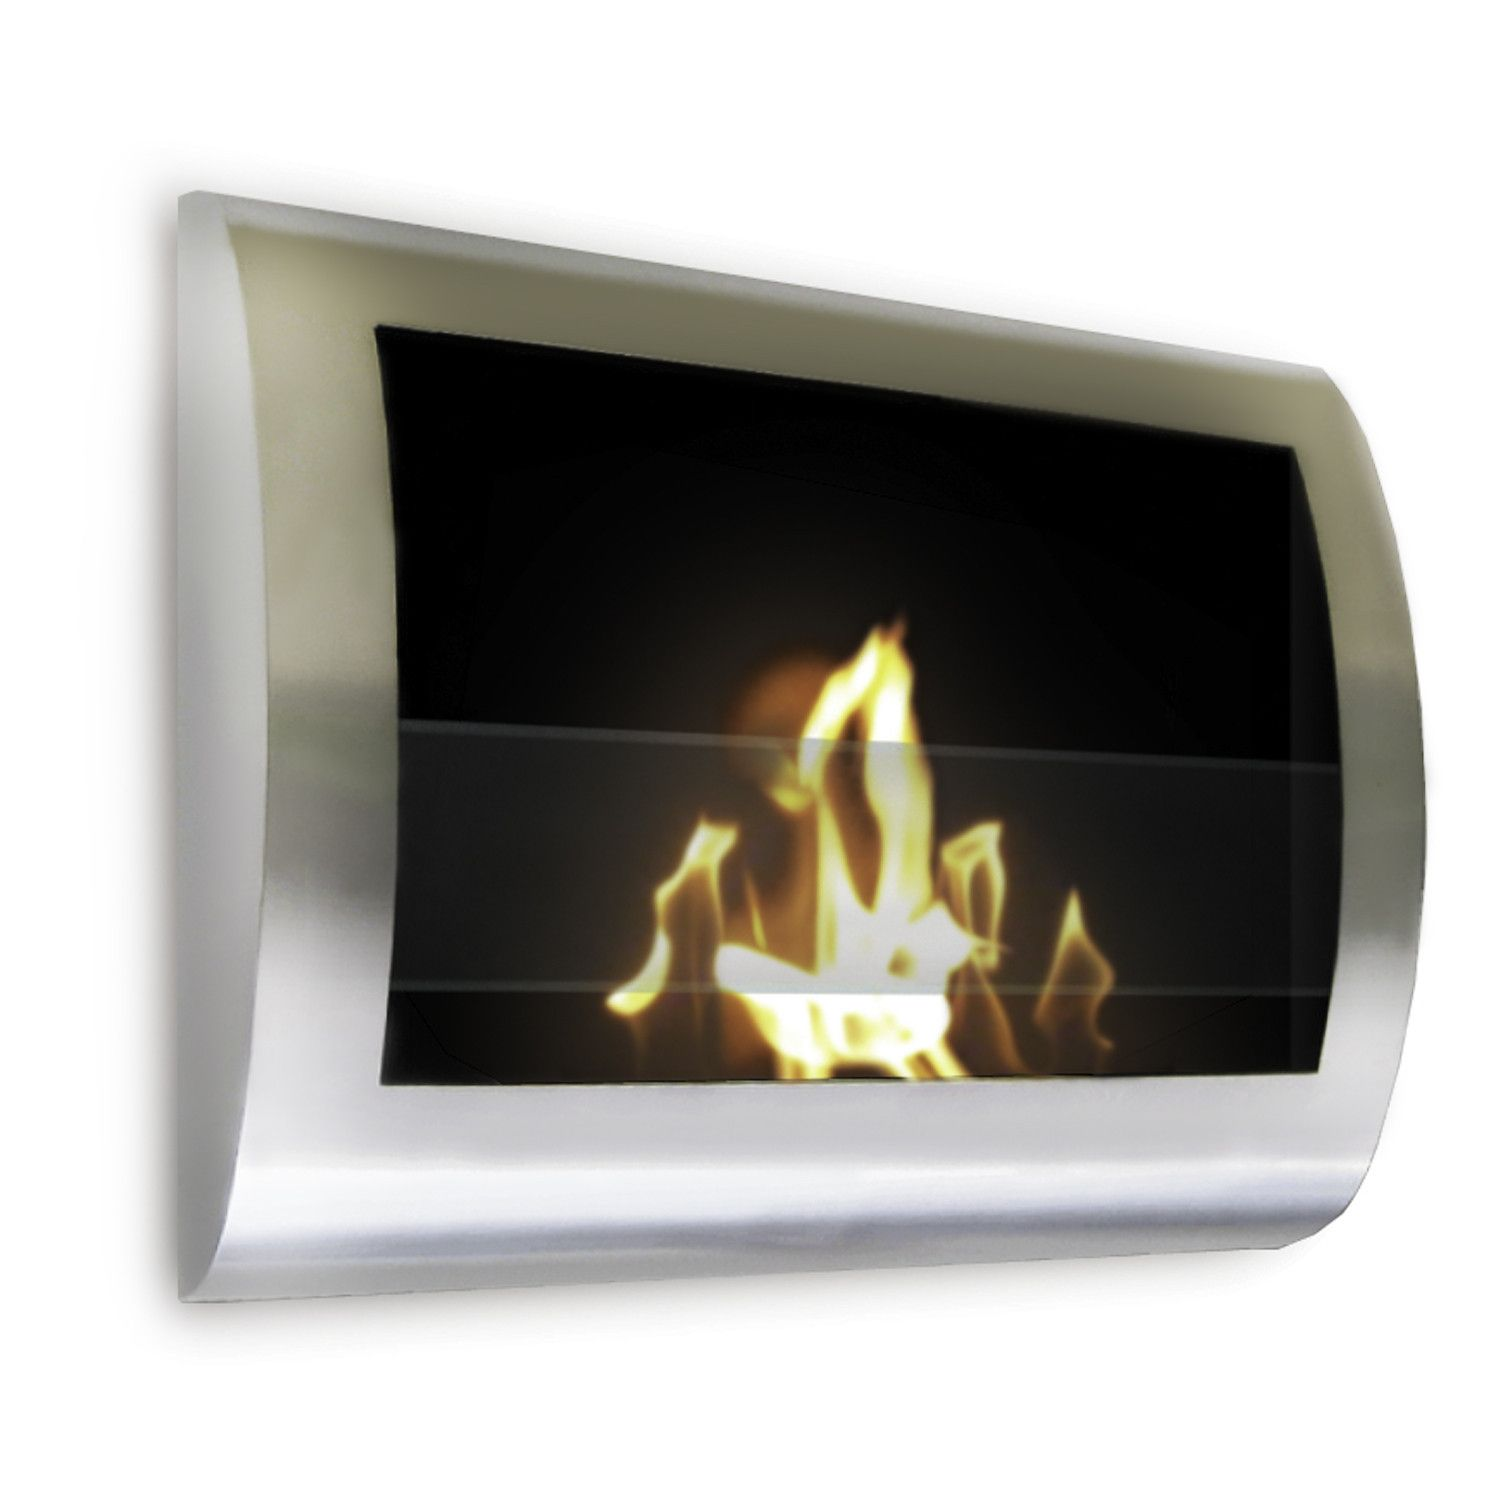 portable fireplace reg $350, sale: $219 @touch of Modern